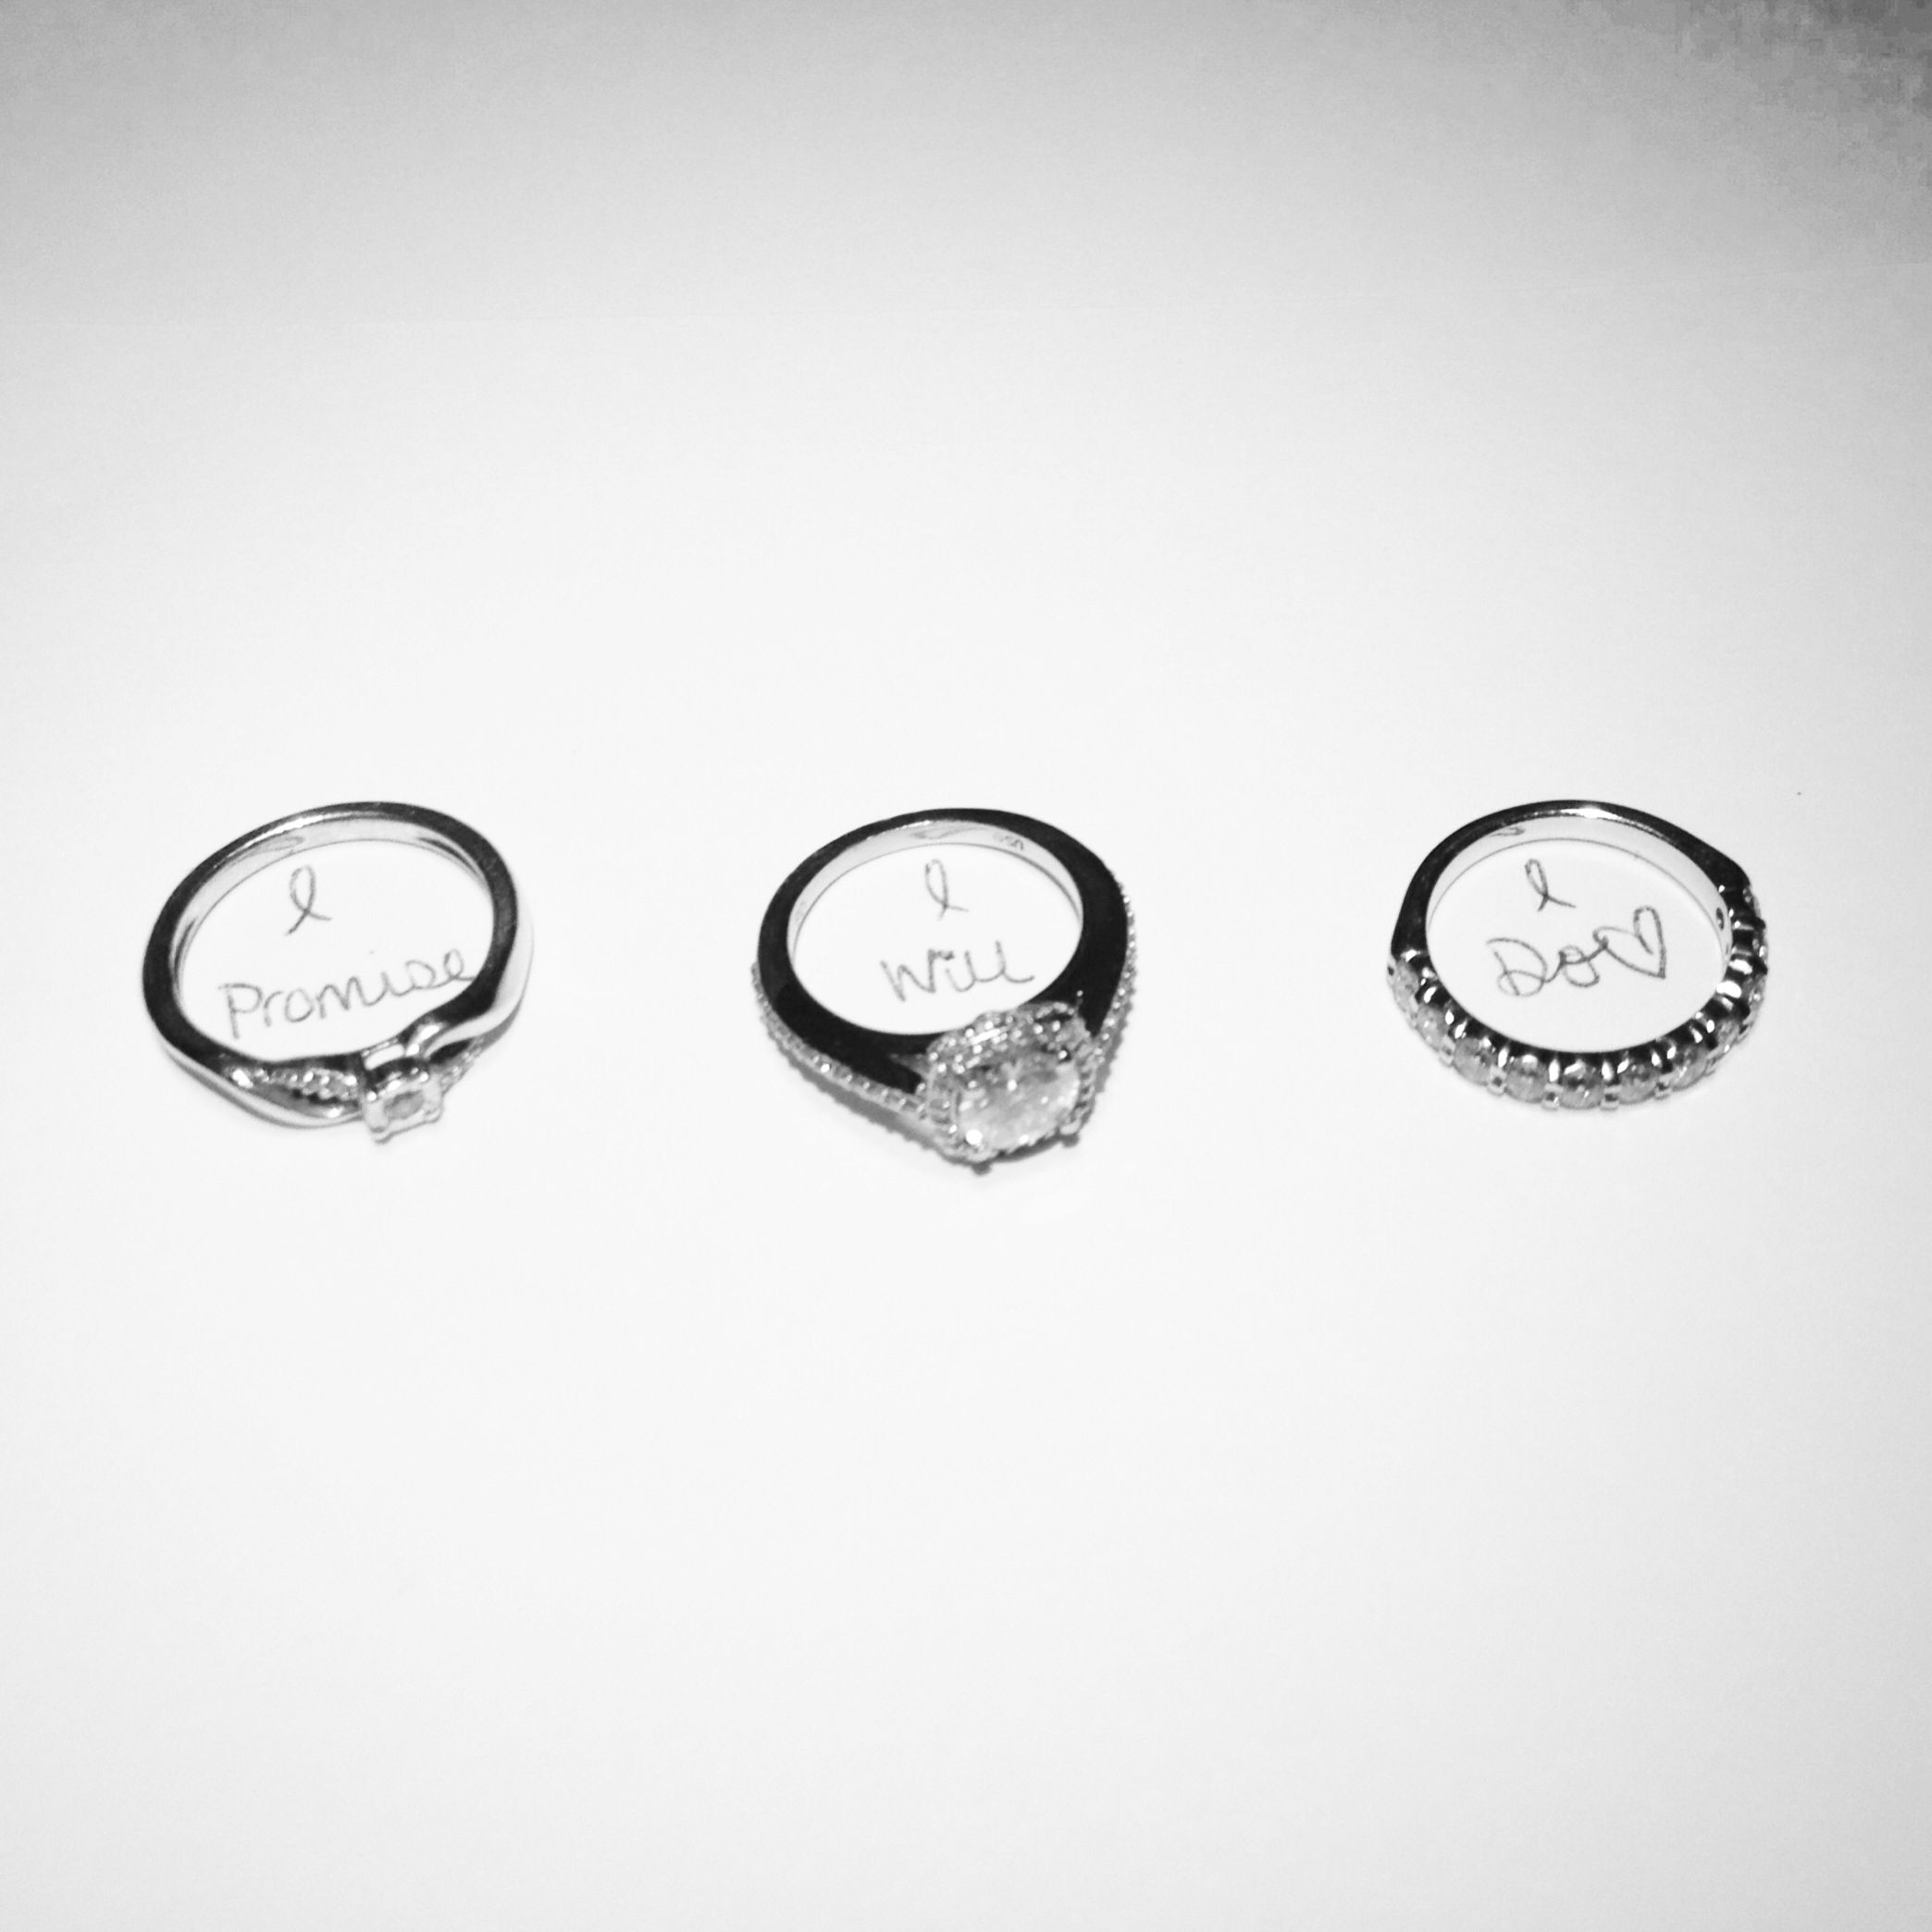 3 Promise Ring Engagement Wedding Band This Is A Brilliant And Cute Idea